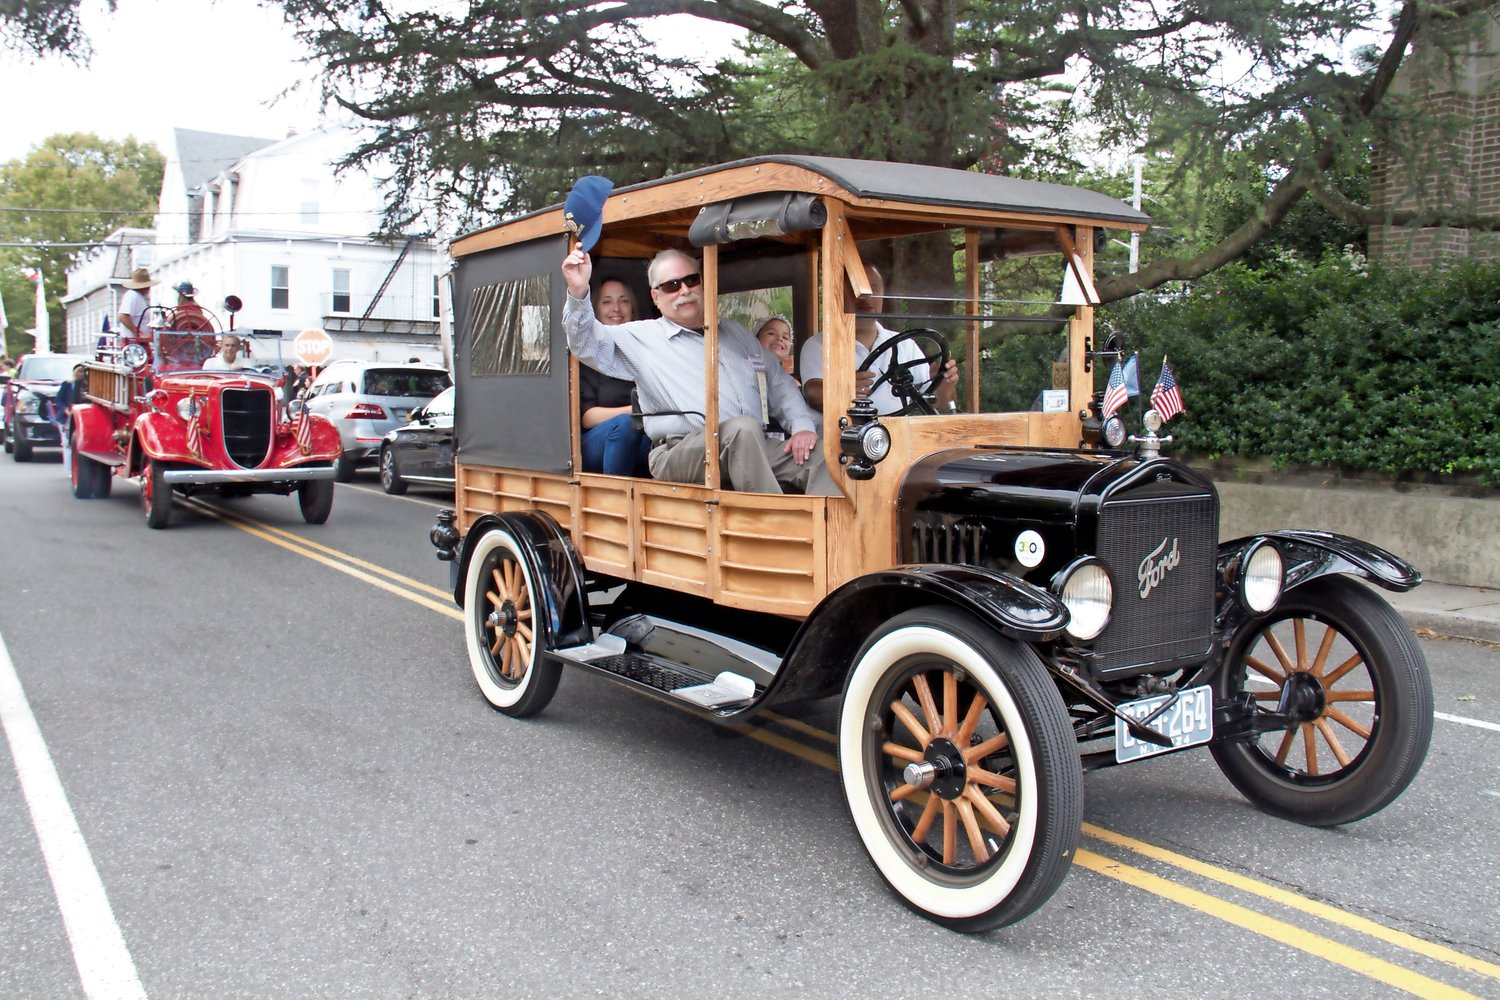 Veteran James Foote rode in an antique Model-T Ford.